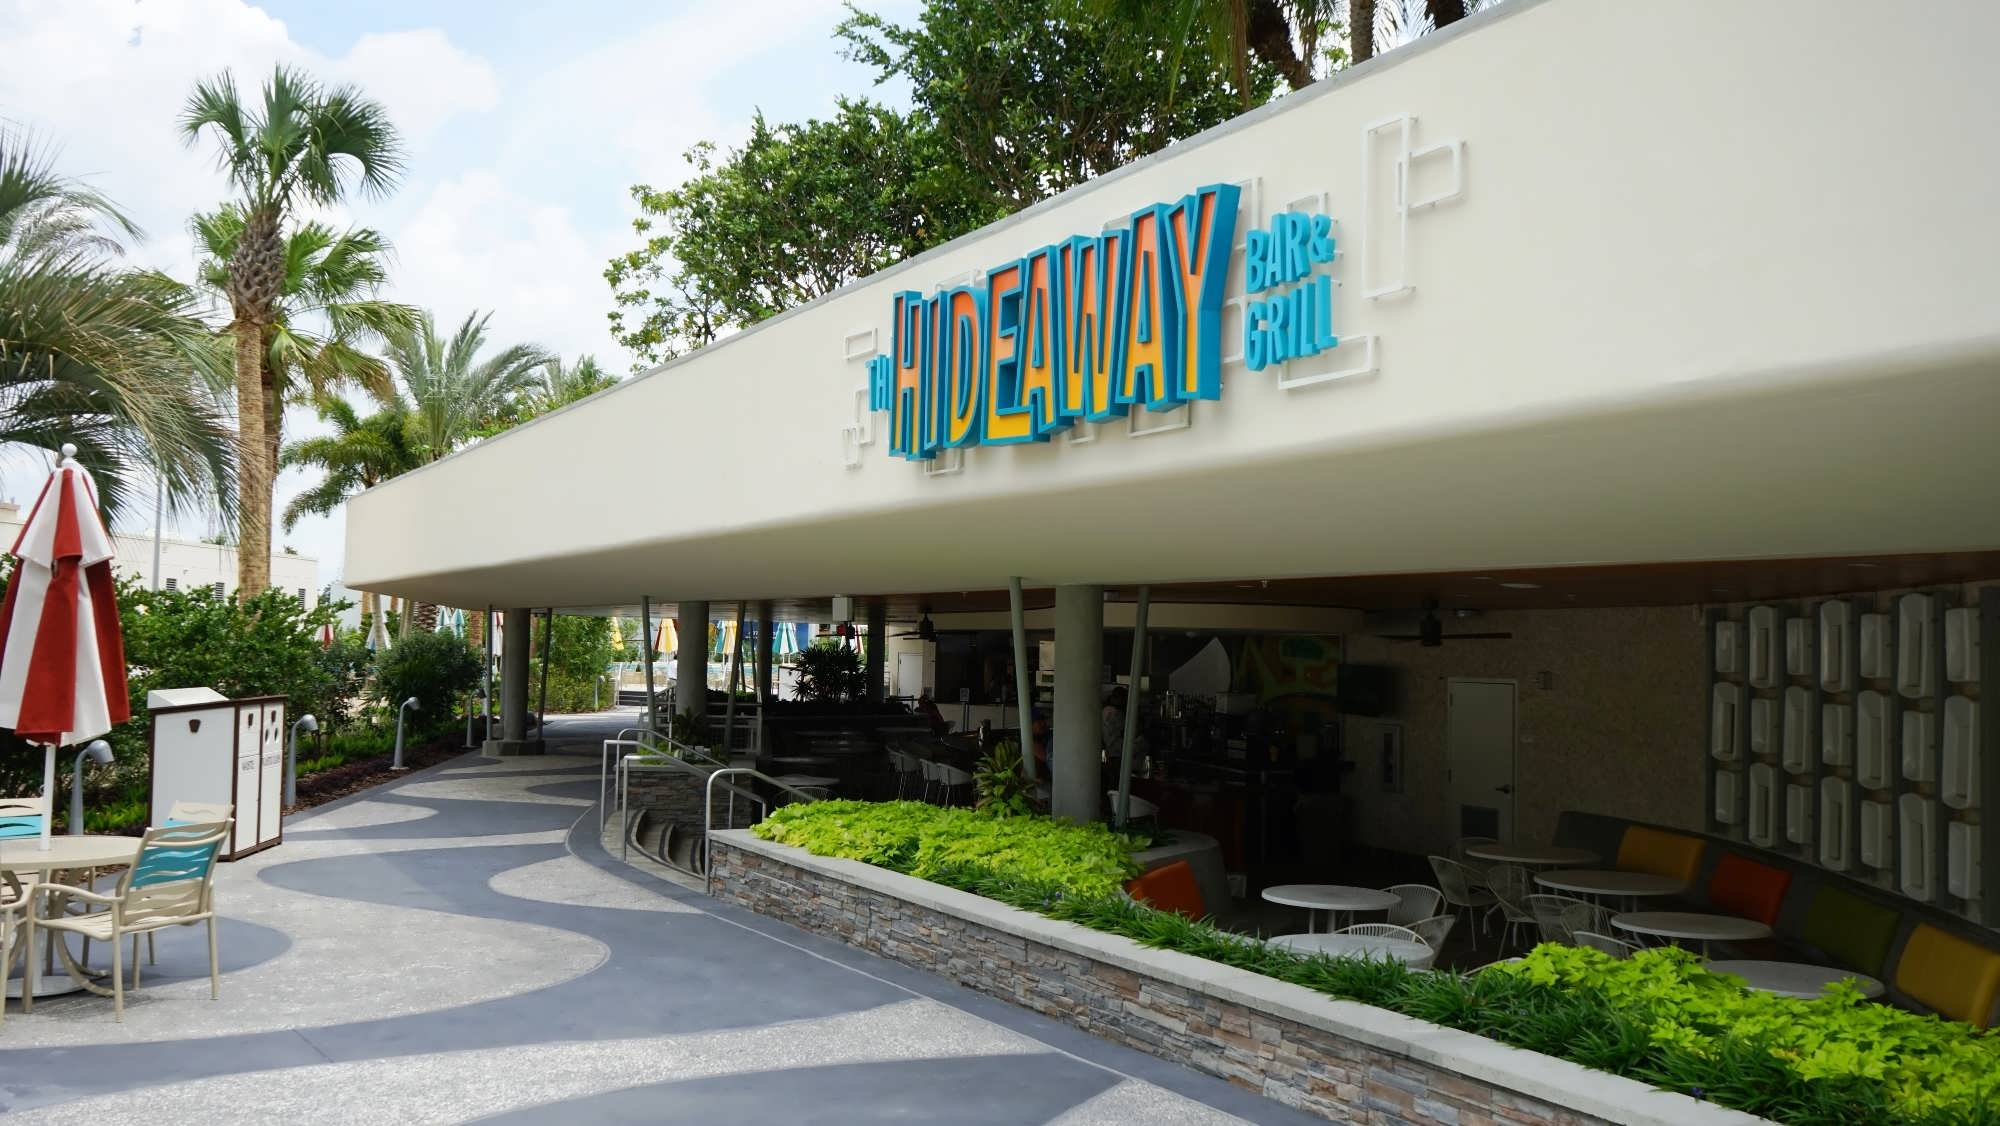 The split-level entrance to the Hideaway Bar and Grill